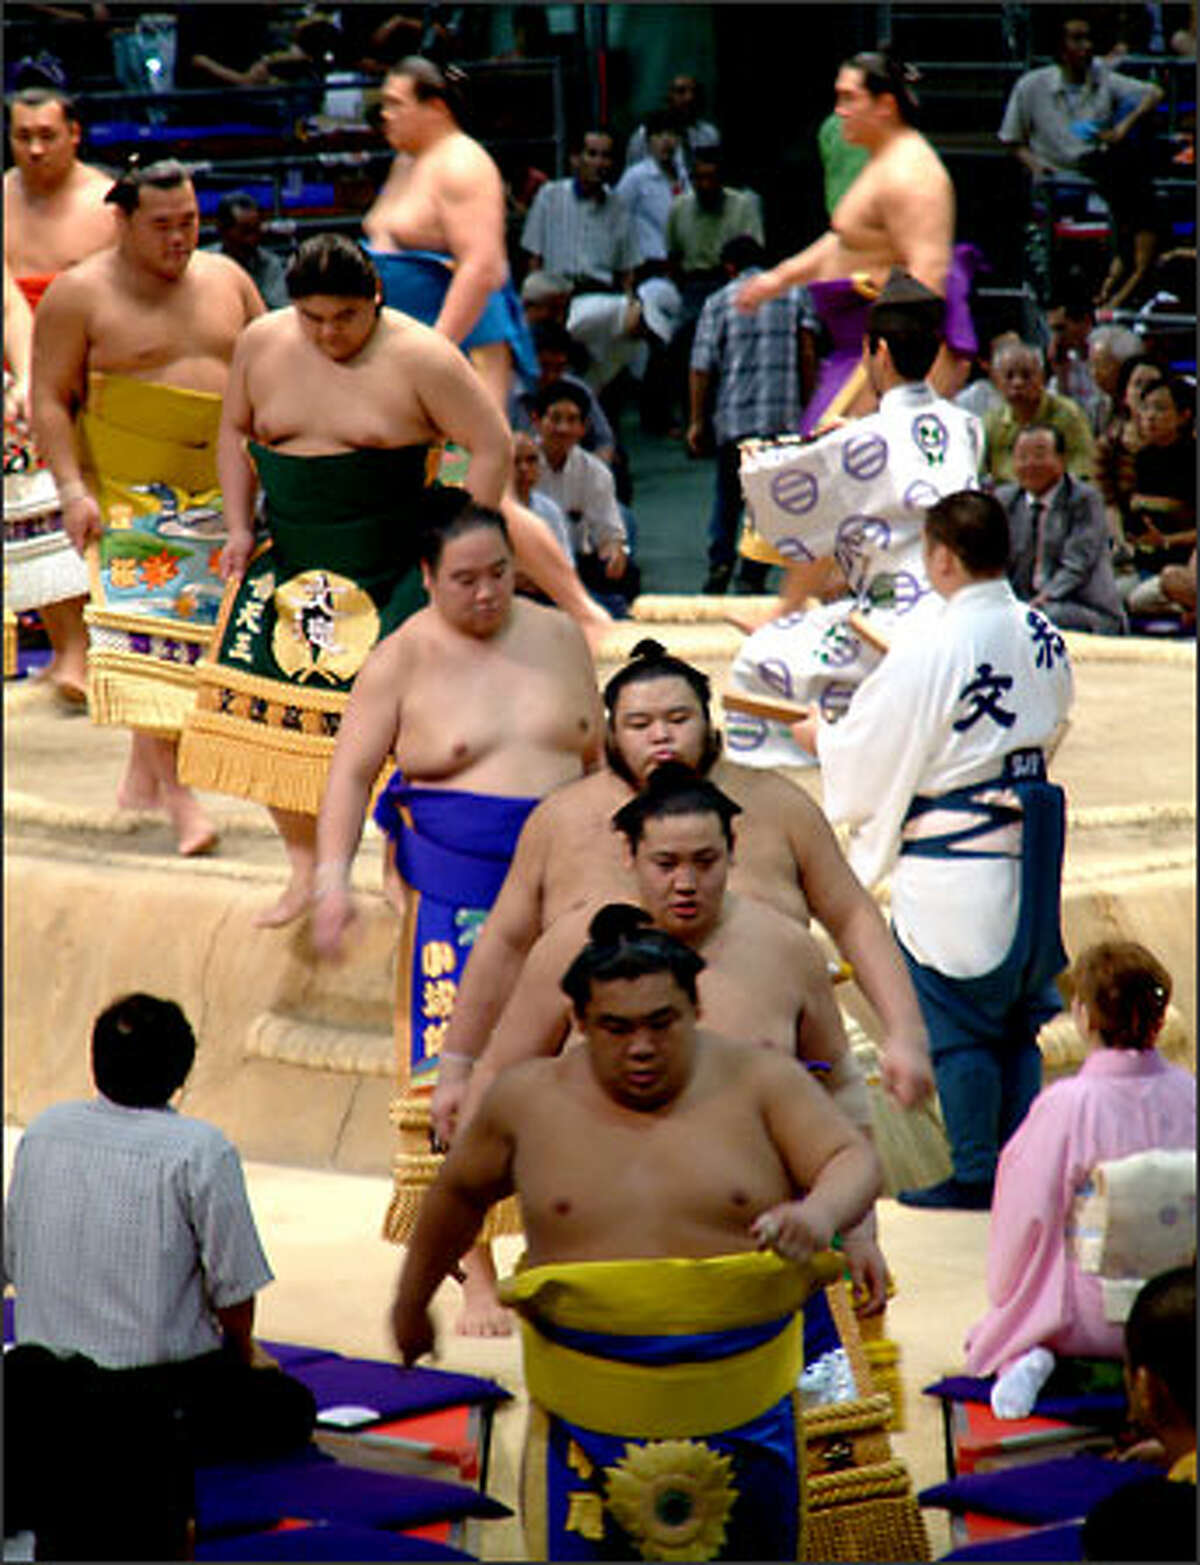 Sumo wrestlers are not divided into weight categories, therefore a skinny wrestler (yes, there are a few skinny ones) may end up competing against someone much heavier. Wrestlers, instead, are divided into groups based on their skill level. Pictured here, high-ranking wrestlers leave the ring shortly before they begin facing off against each other.